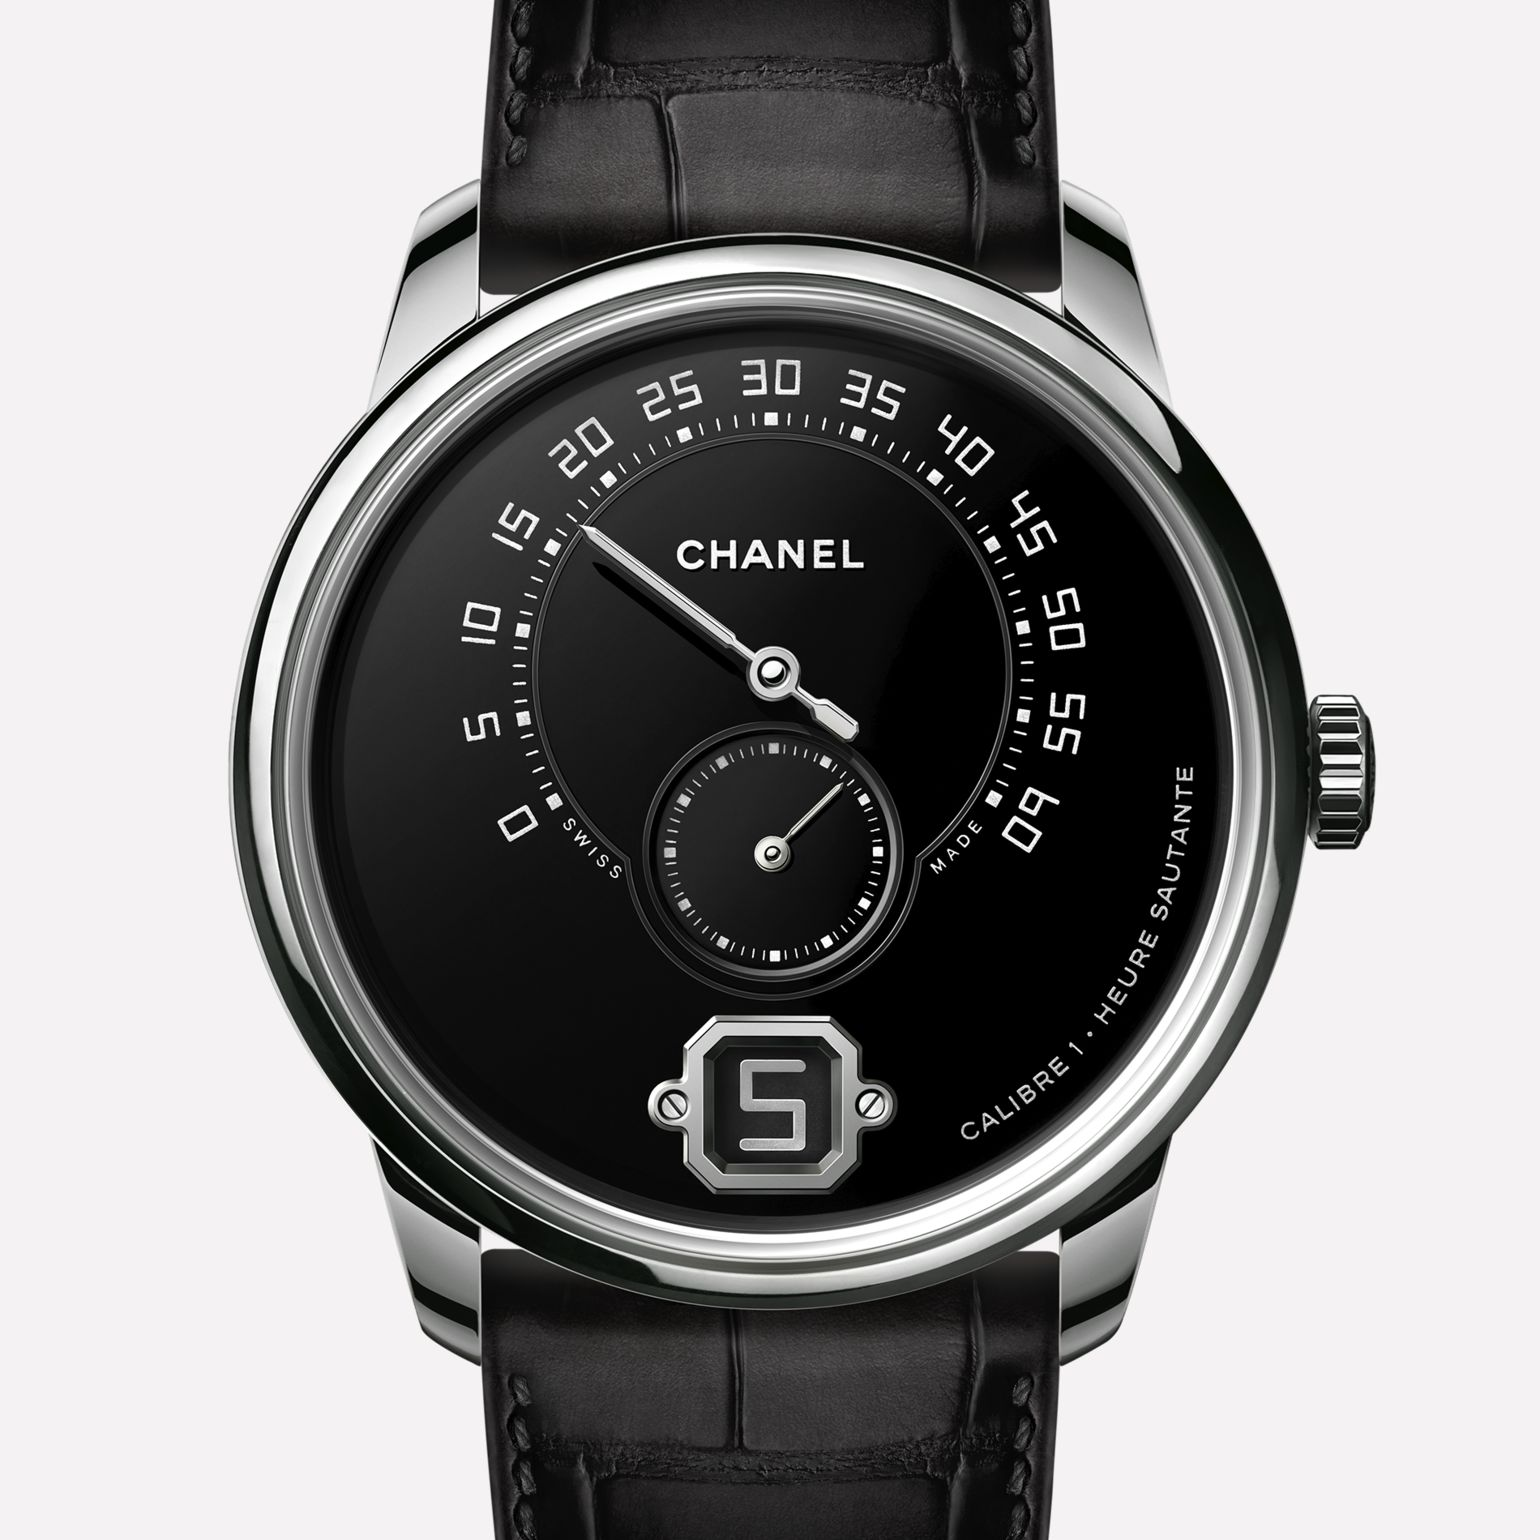 Orologio Monsieur de CHANEL Platino, quadrante in smalto Grand Feu con ore saltanti, minuti <br>retrogradi a 240 gradi e contatore dei piccoli secondi.